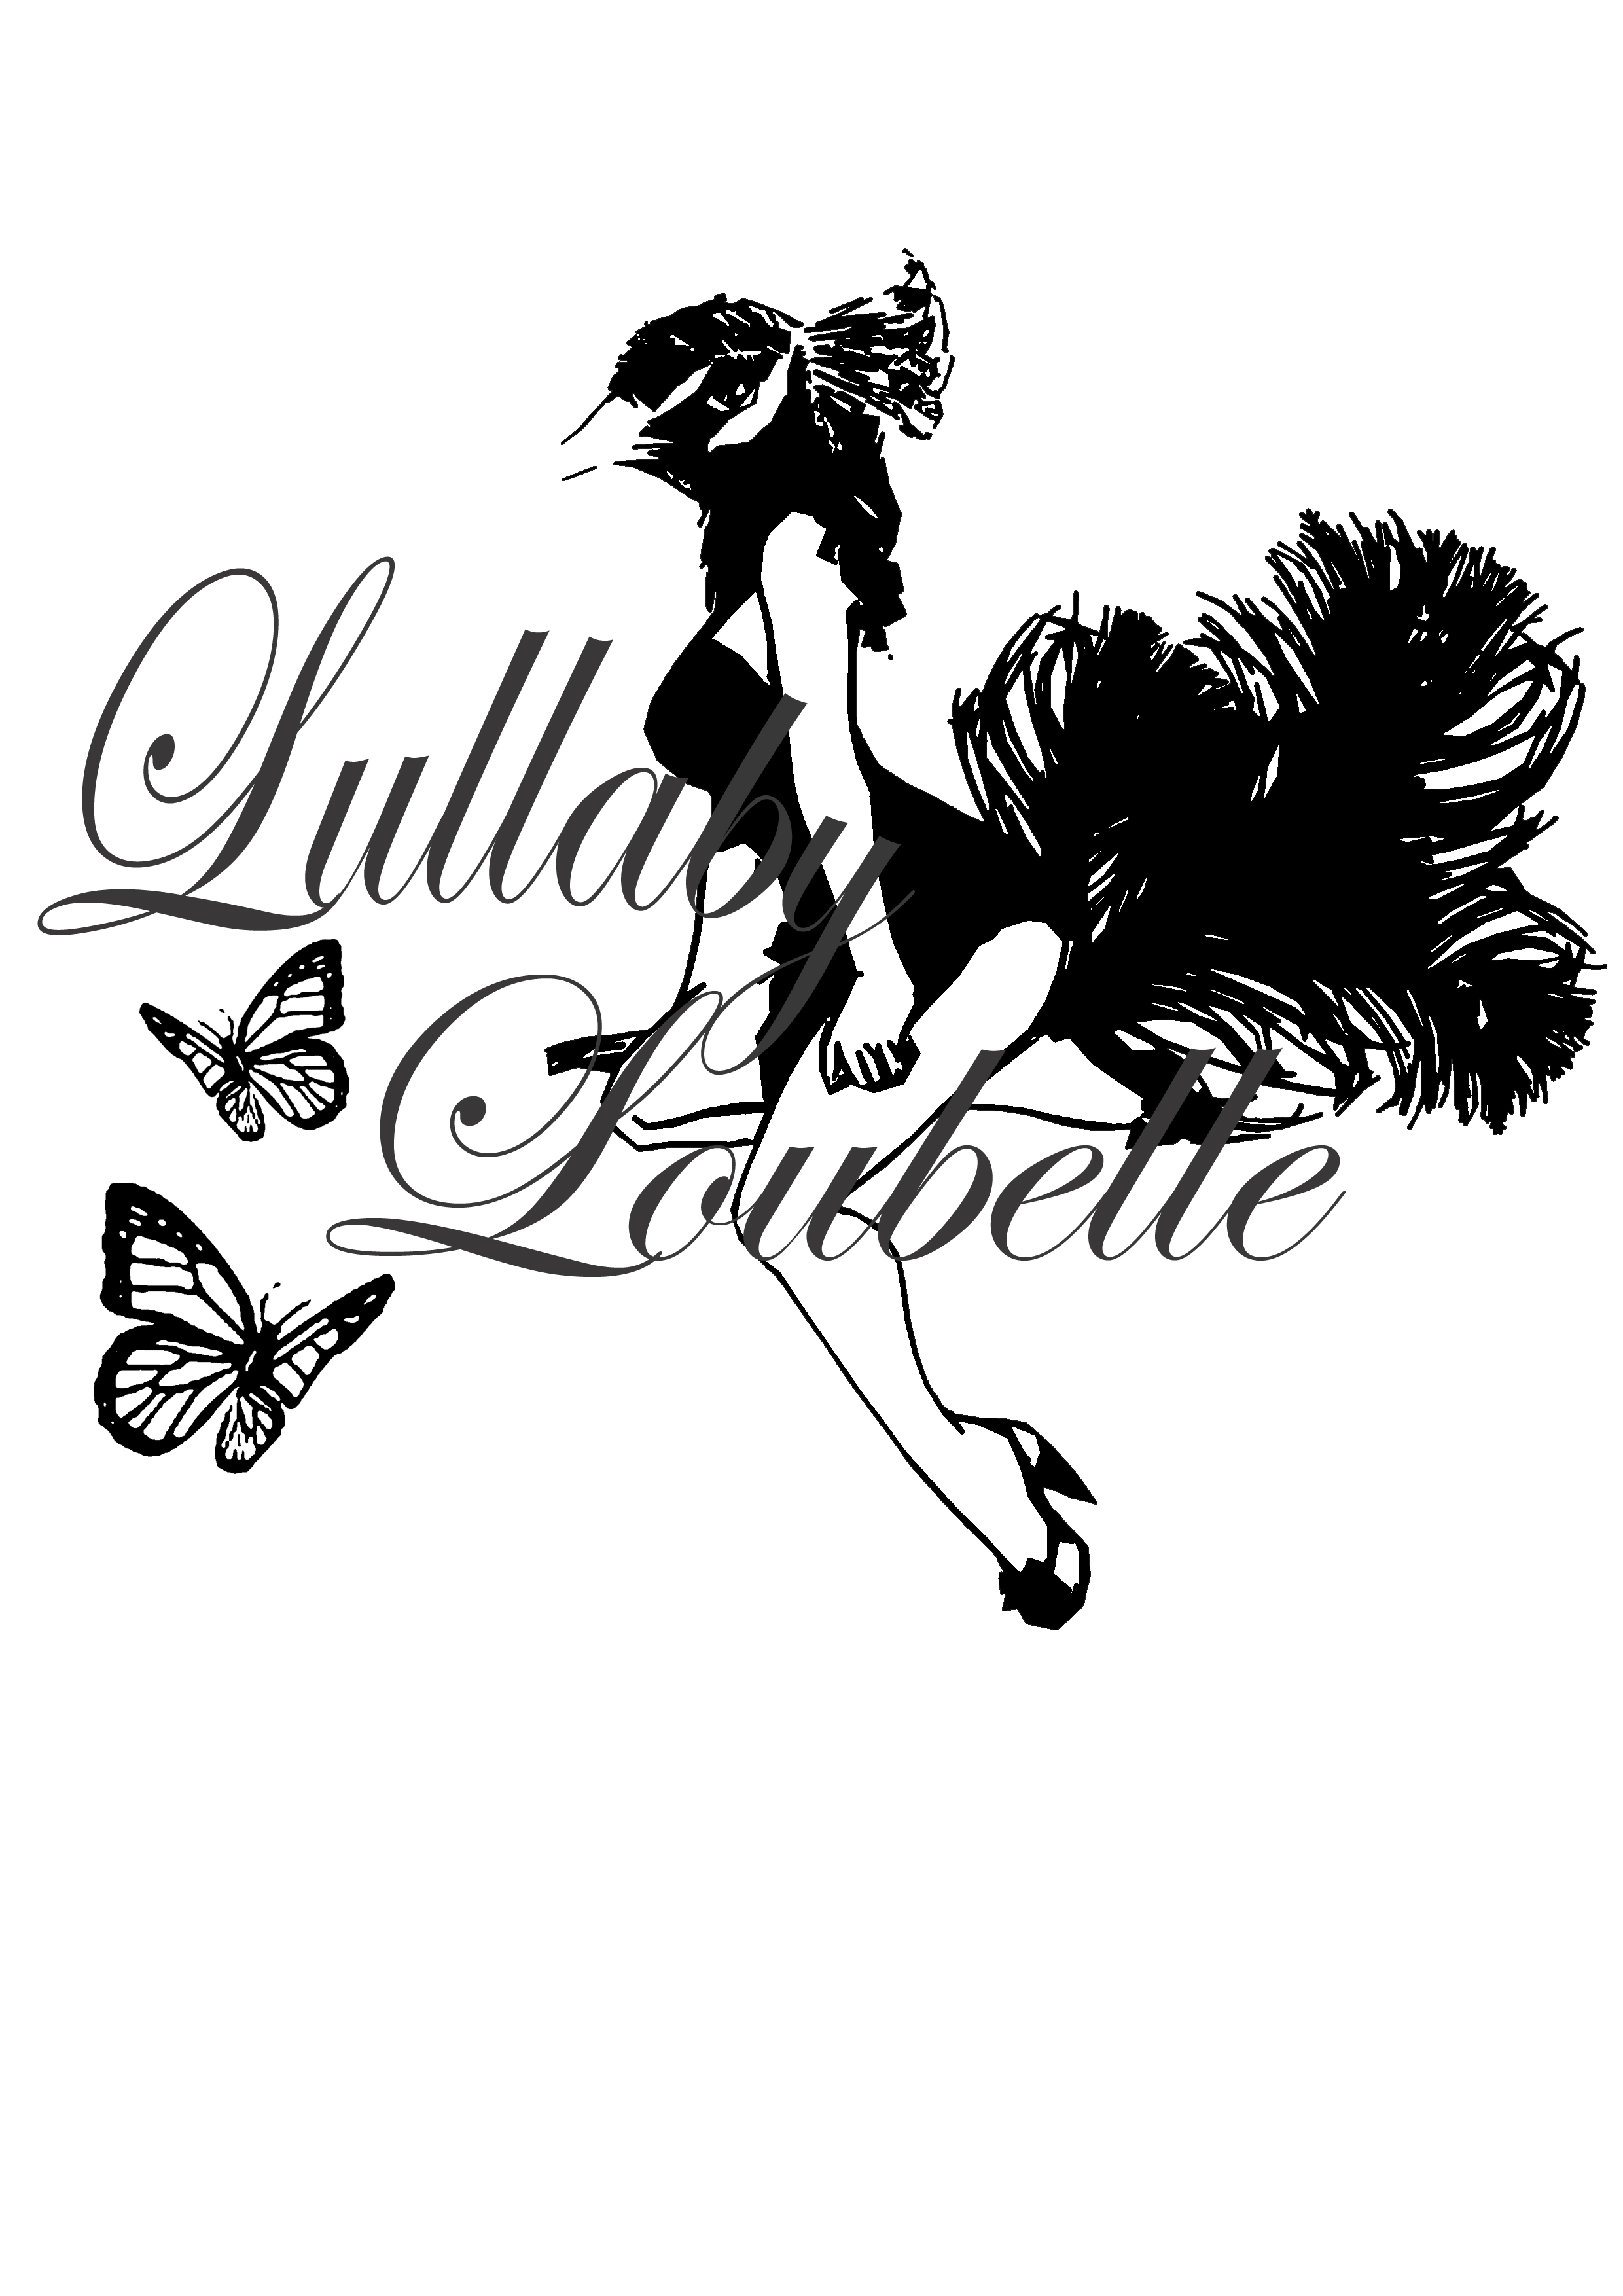 Lullaby Loubelle